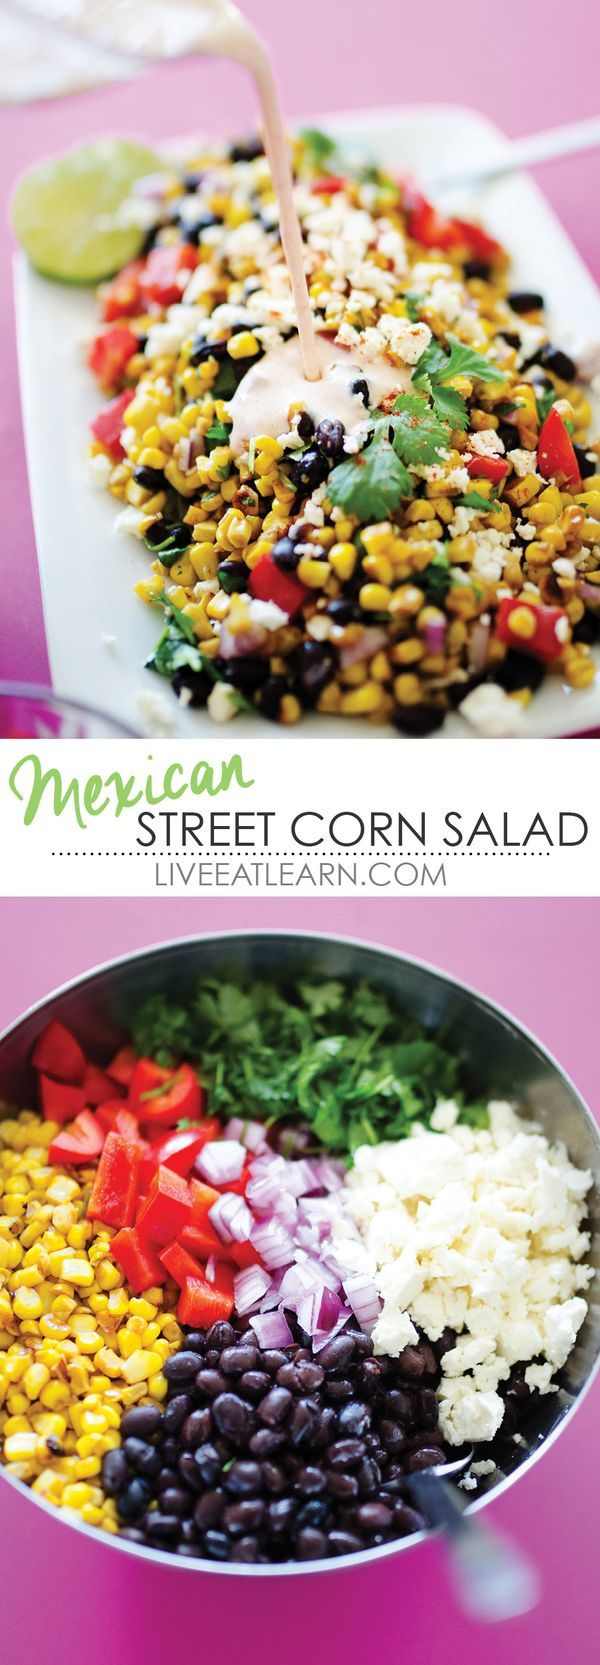 This Mexican Street Corn Salad recipe is a healthy version of the classic street vendor style elote, a grilled corn on the cob rolled in cotija cheese and lathered in a creamy sauce. You can put this